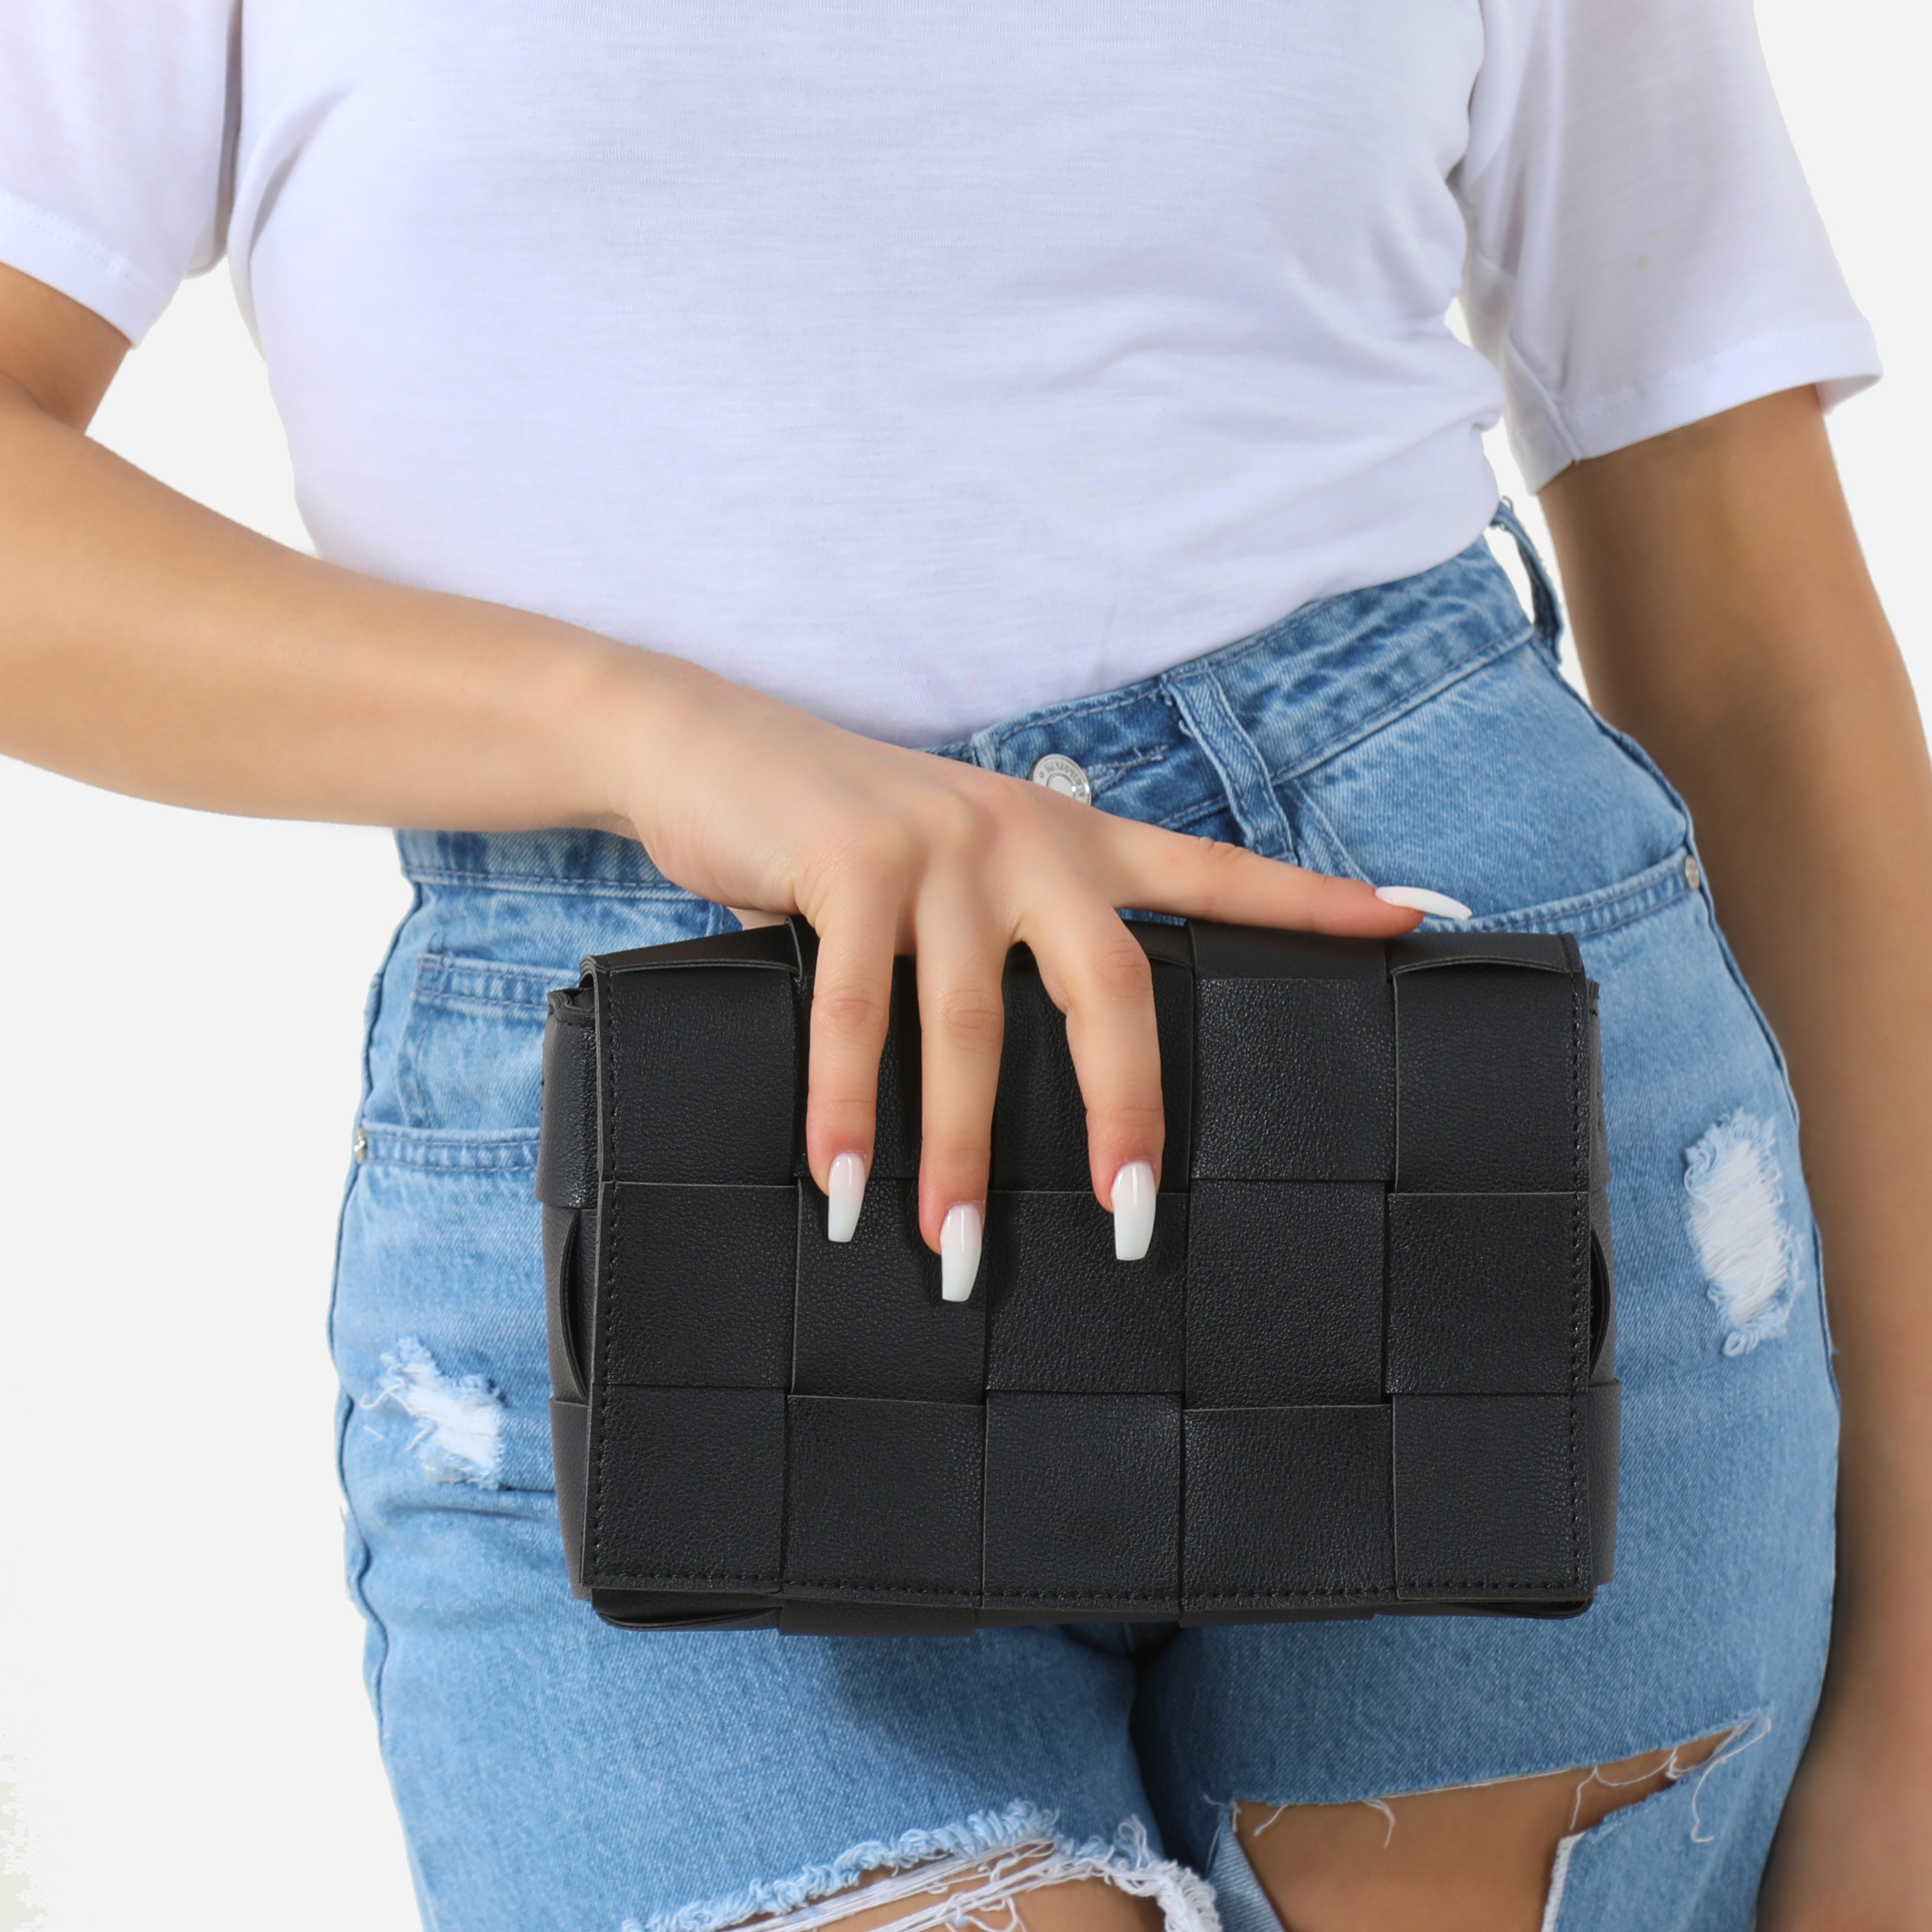 Woven Detail Square Clutch Bag In Black Faux Leather